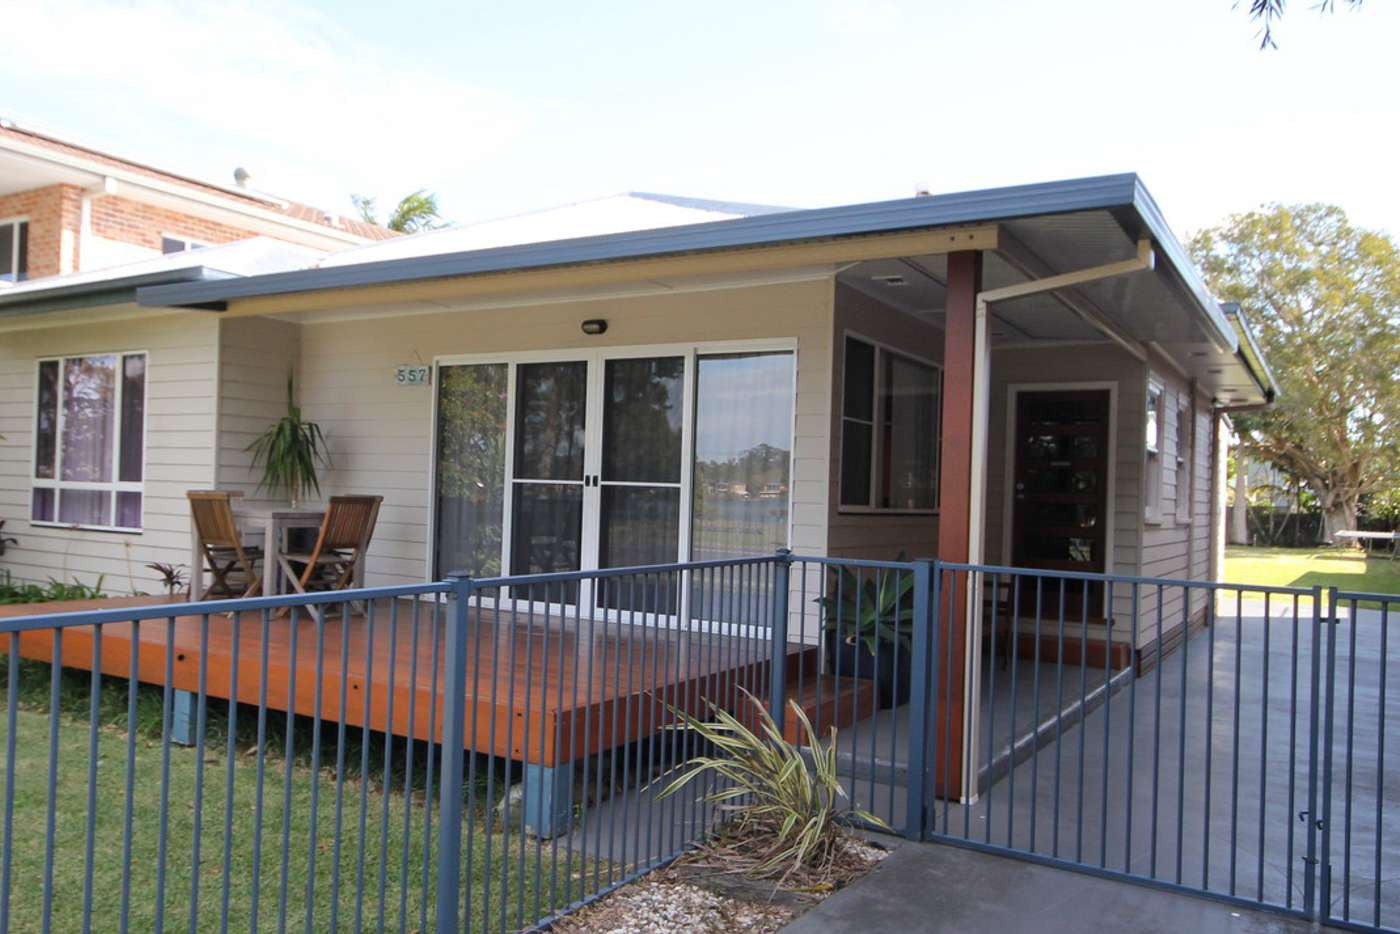 Main view of Homely house listing, 557 Ocean Drive, North Haven NSW 2443